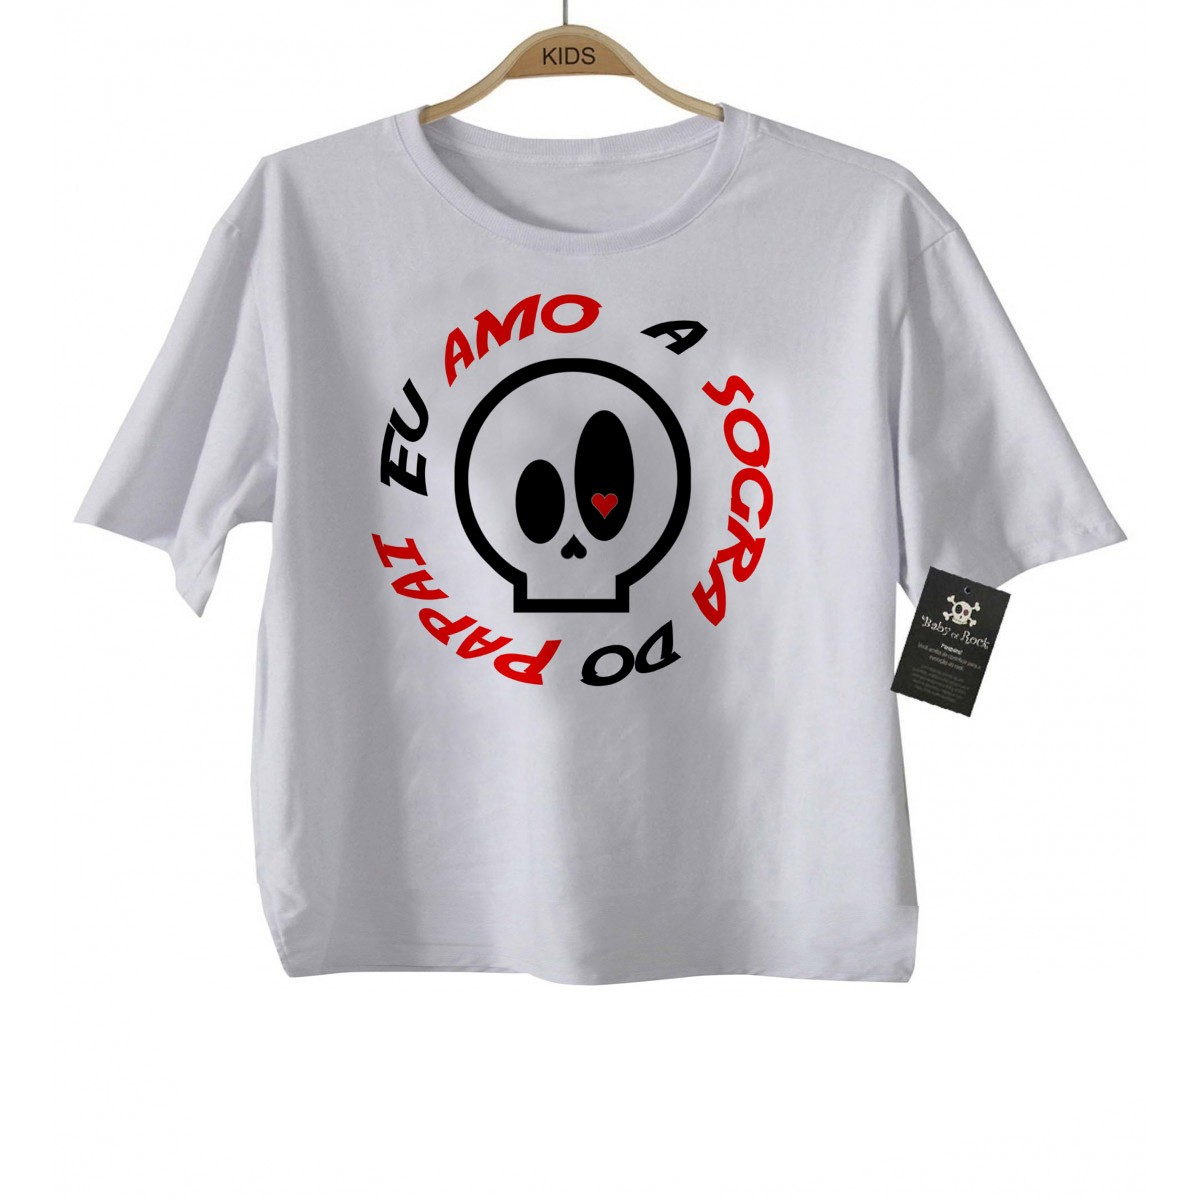 Camiseta Infantil Divertida - Amo a Sogra do Papai - White  - Baby Monster S/A